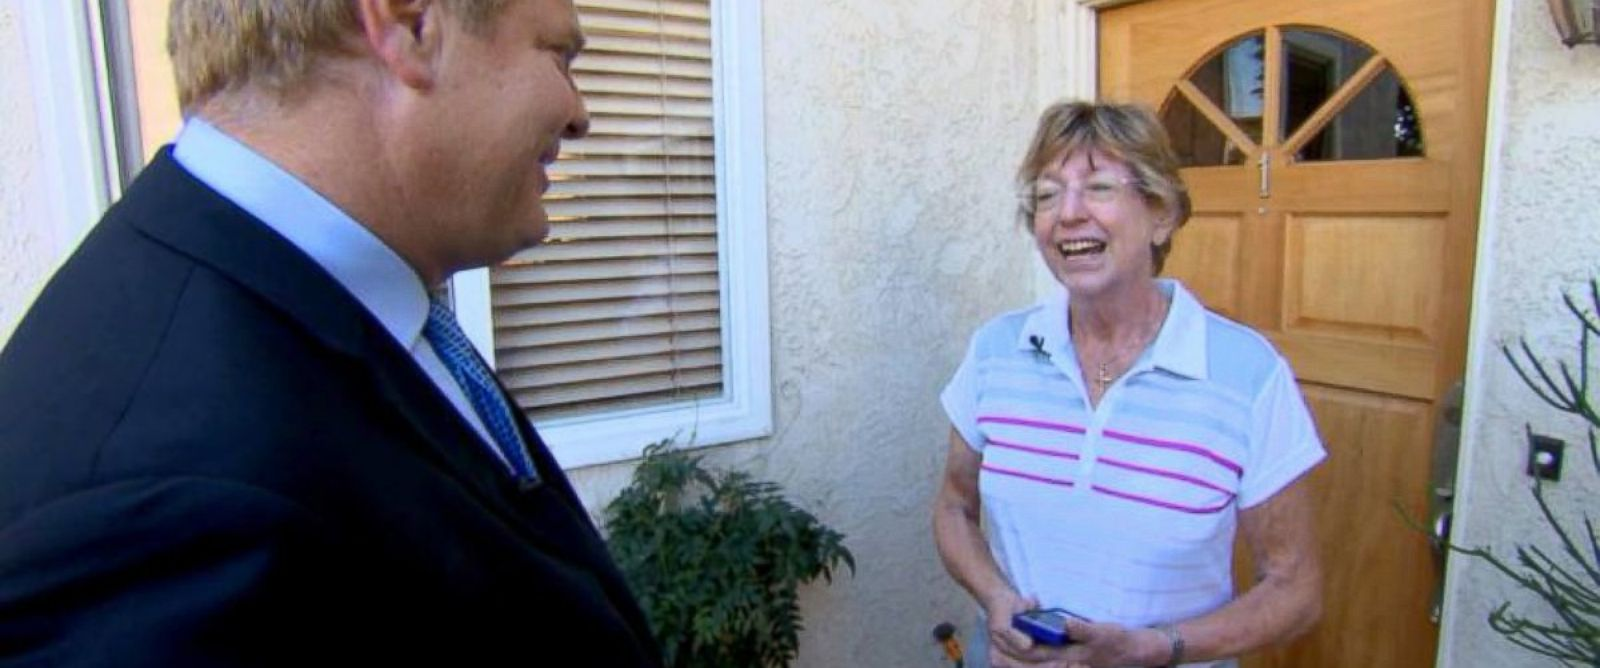 PHOTO: Michael Scott Moores mother reacts to news of his release.